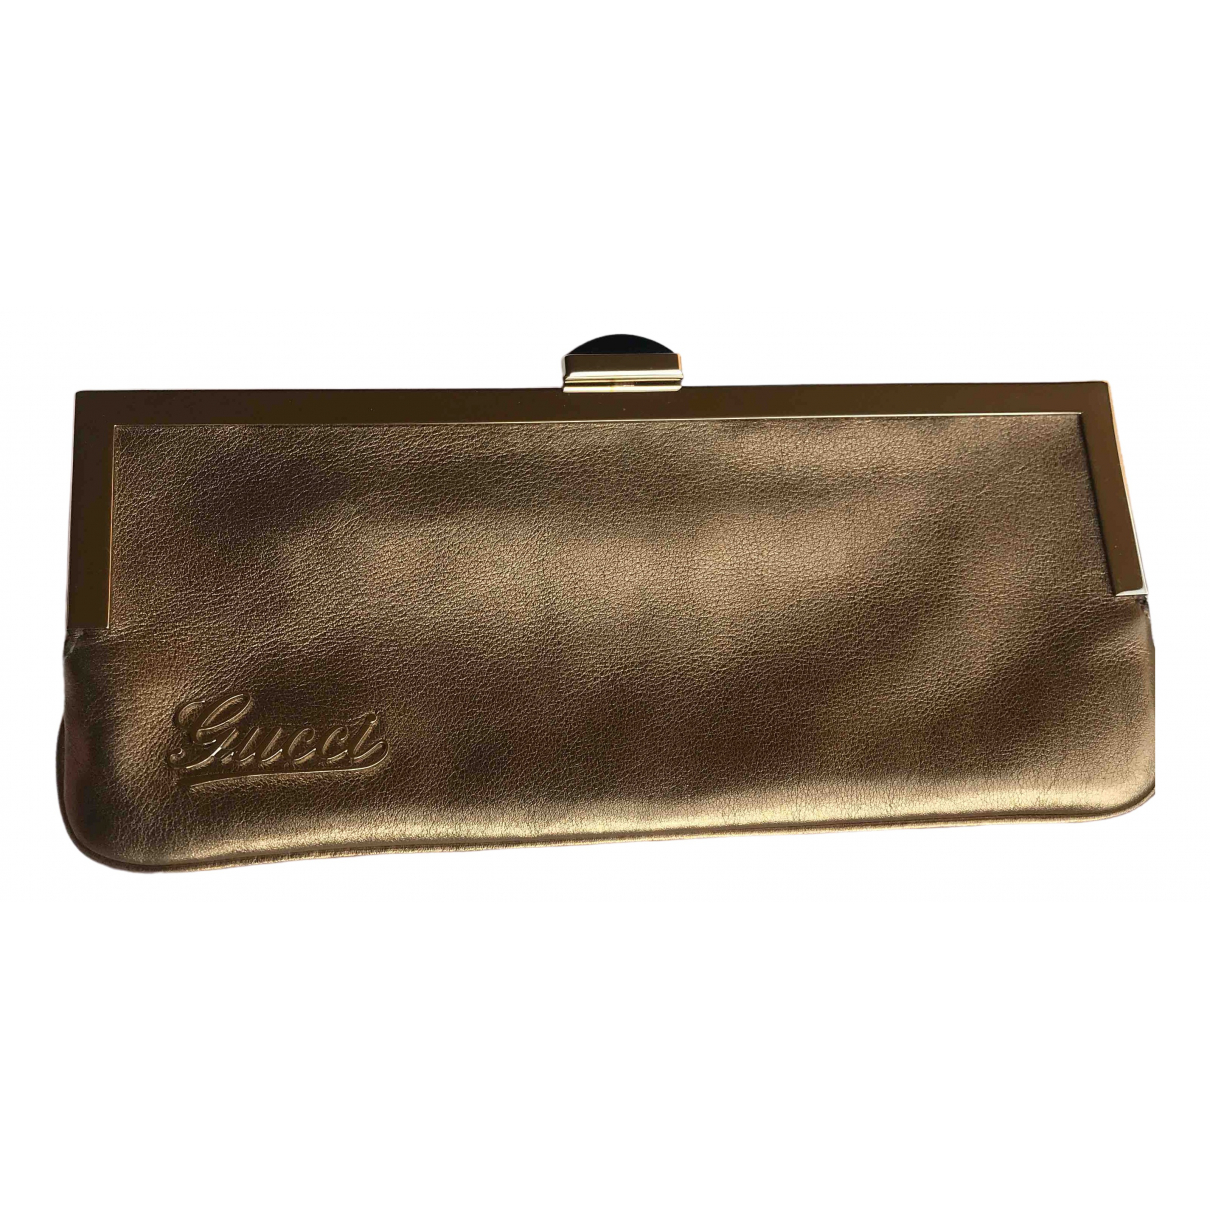 Gucci \N Gold Leather Clutch bag for Women \N